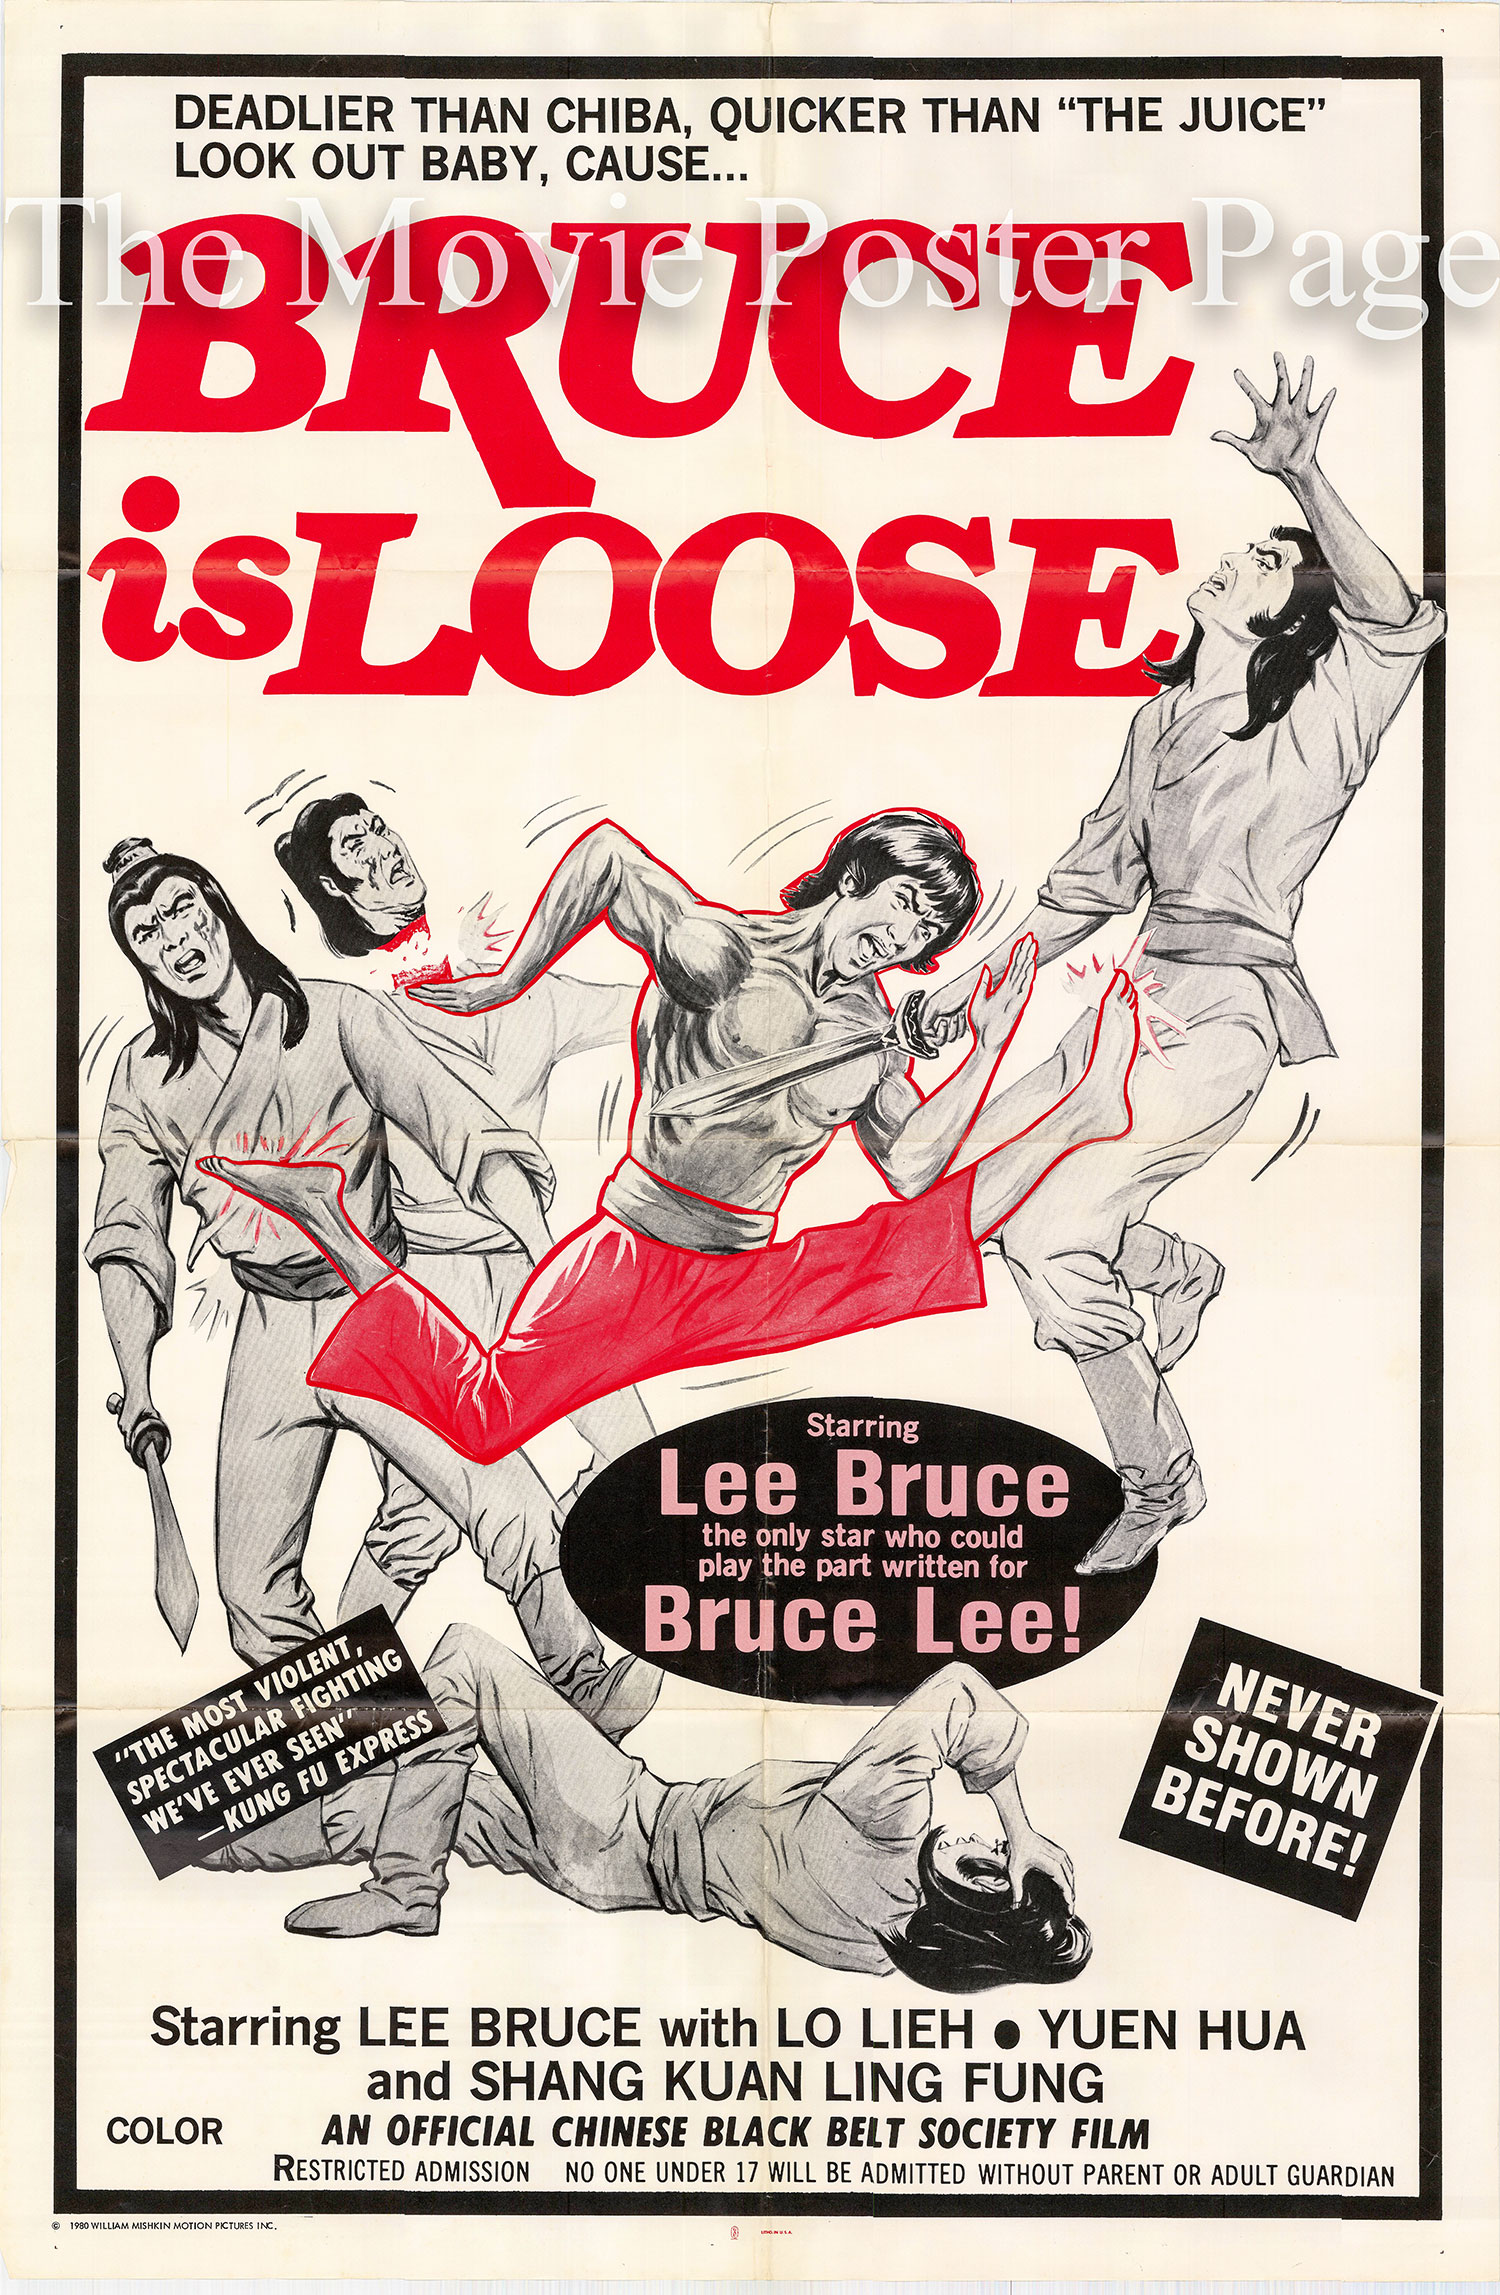 Pictured is a US one-sheet poster for the 1977 Min-Hsiung Wu film Bruce is Loose starring Lee Bruce.